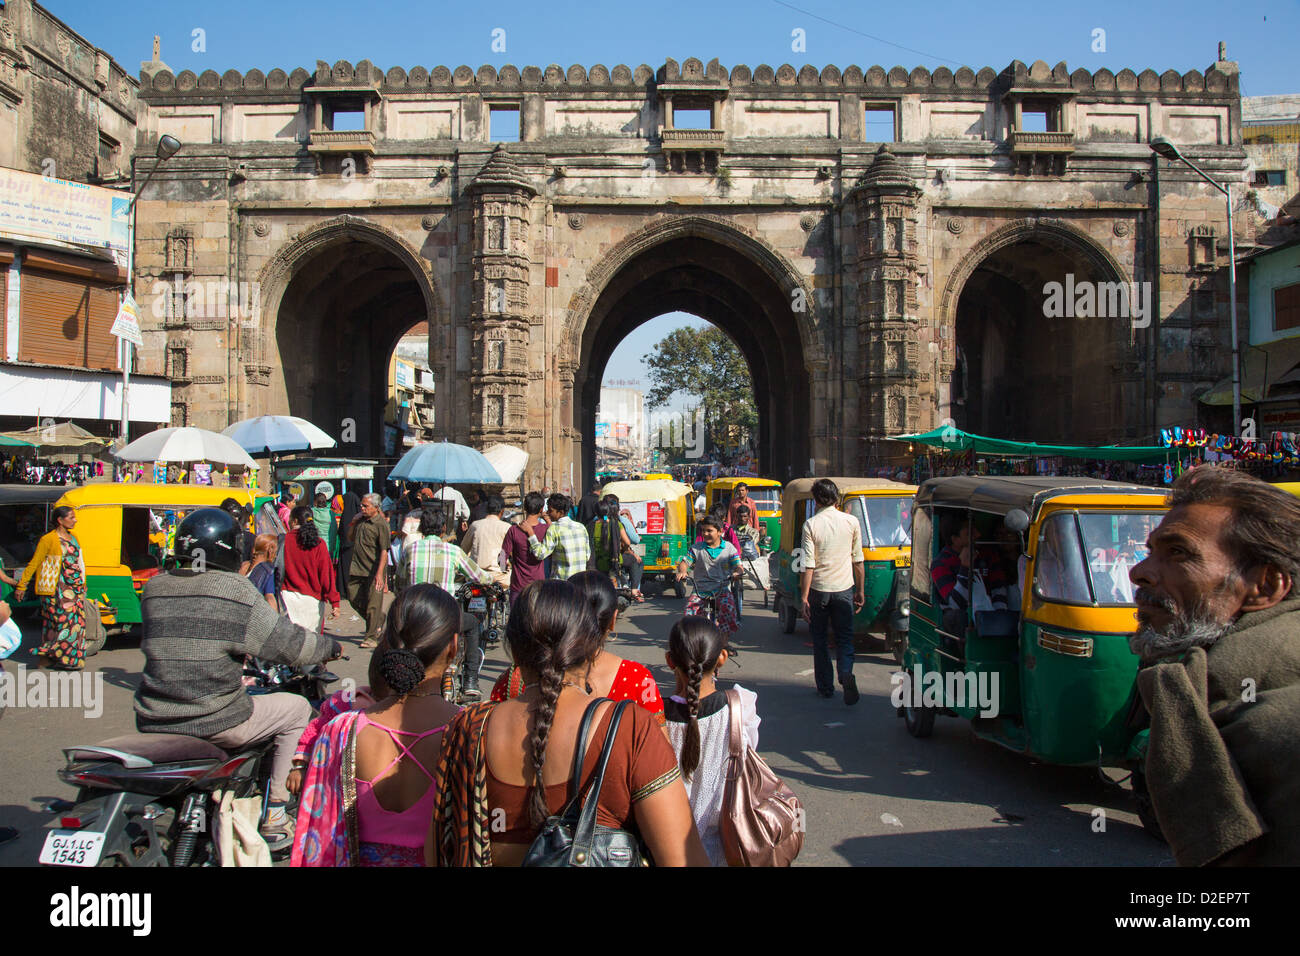 Teen Gate, city walls, Ahmedabad, Gujarat, India - Stock Image